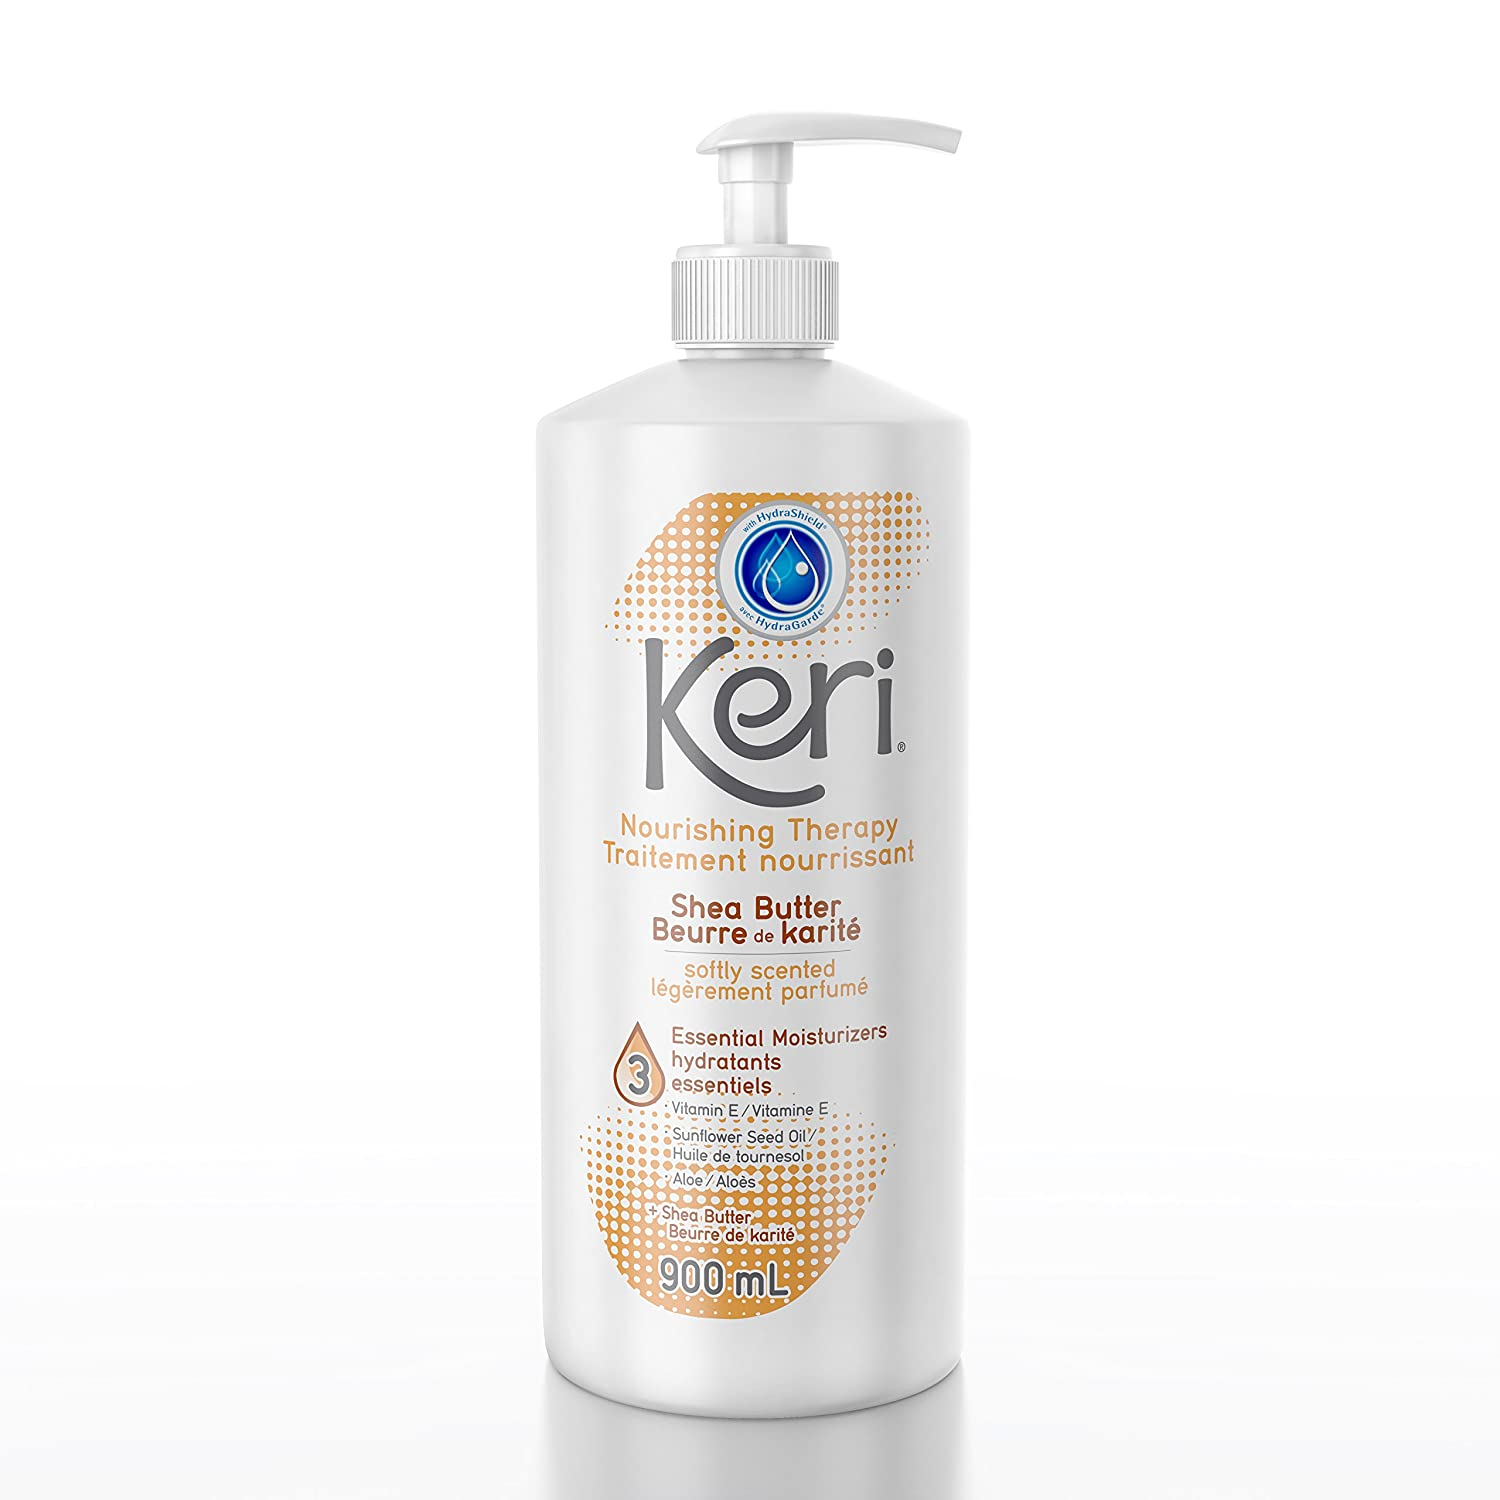 Keri moisturizing body lotion skin therapy with shea butter, 900ml GSK Consumer Healthcare